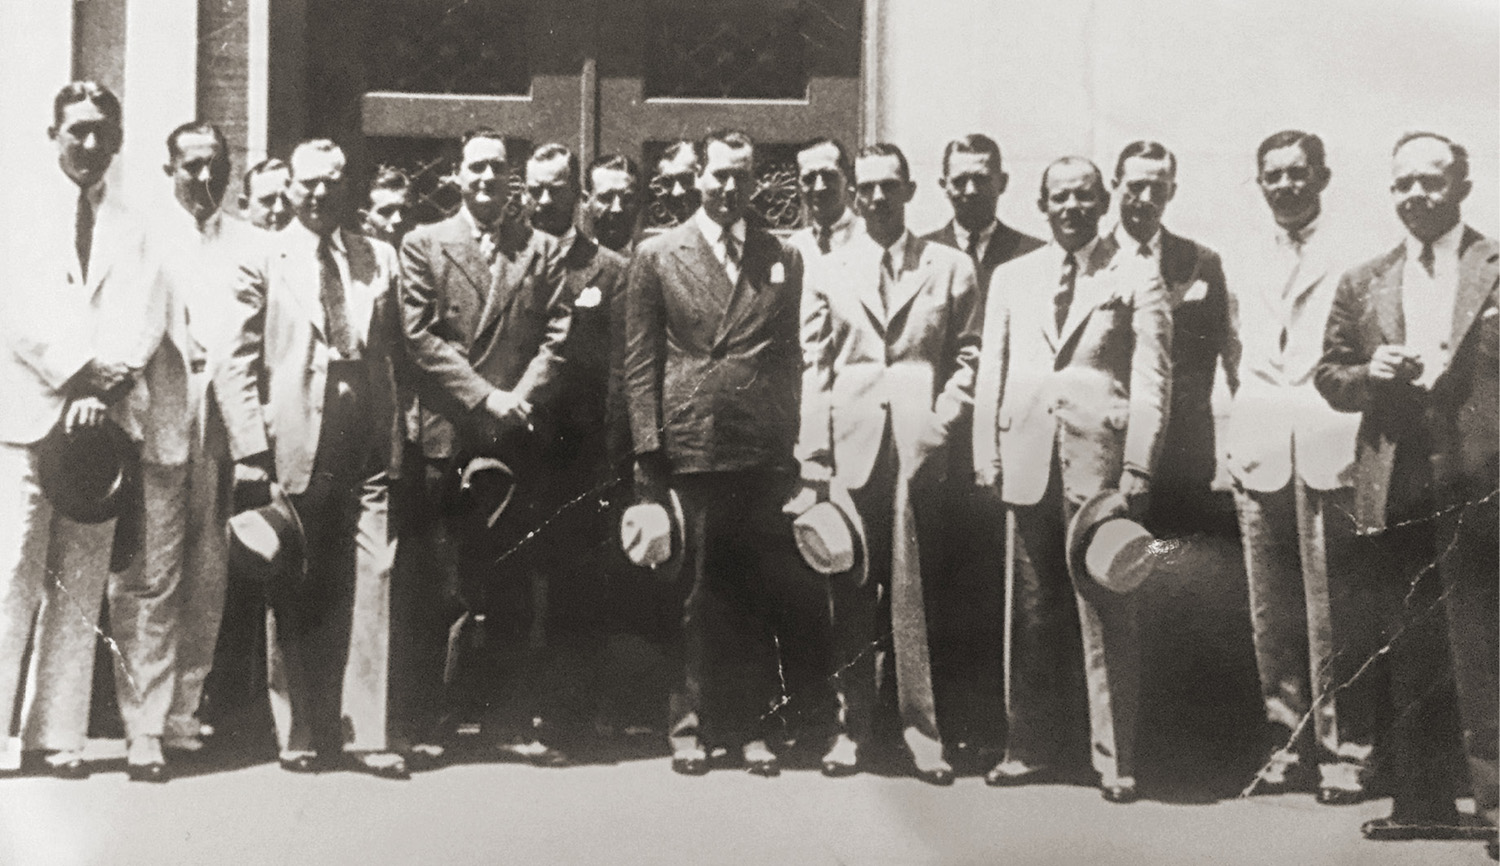 historical photo of members of Equitable Securities Corp.